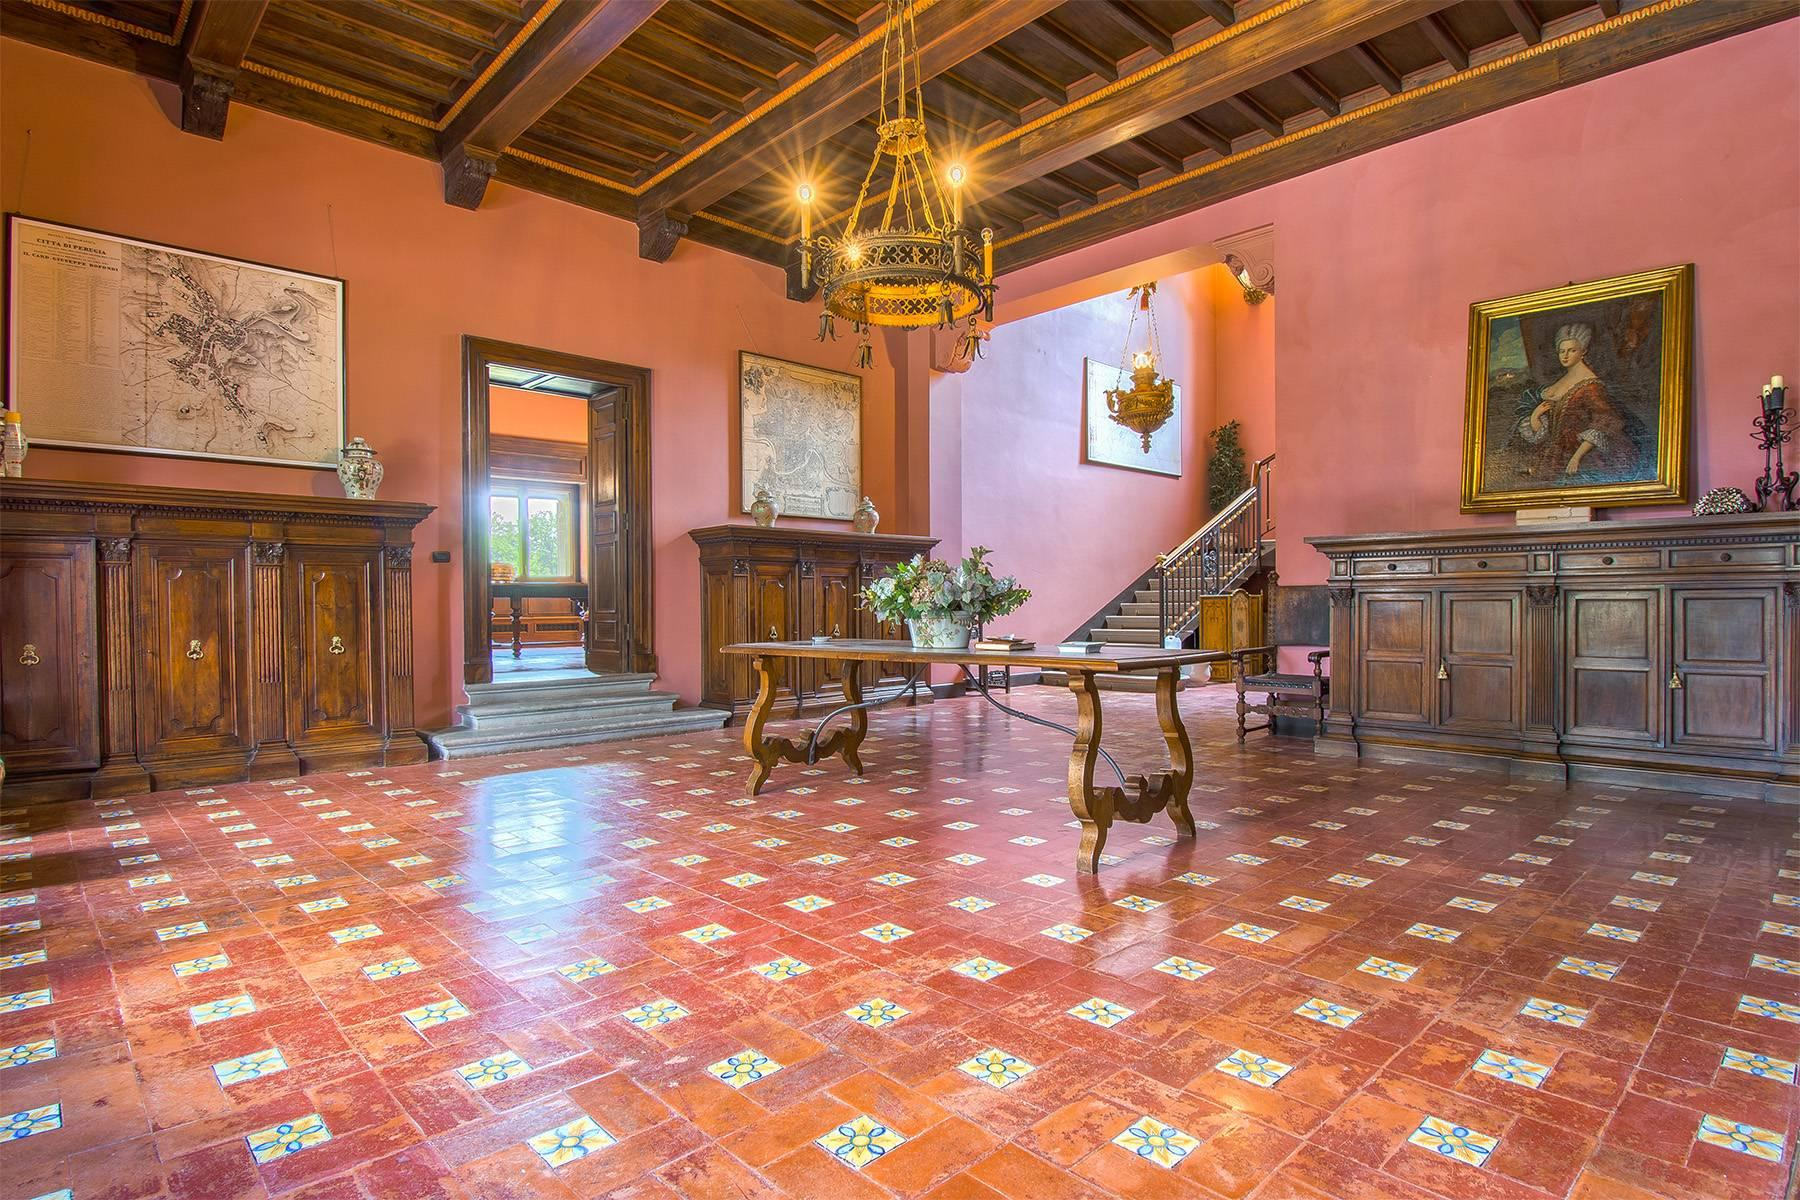 Magnificent villa dating back to the 19th century - 5